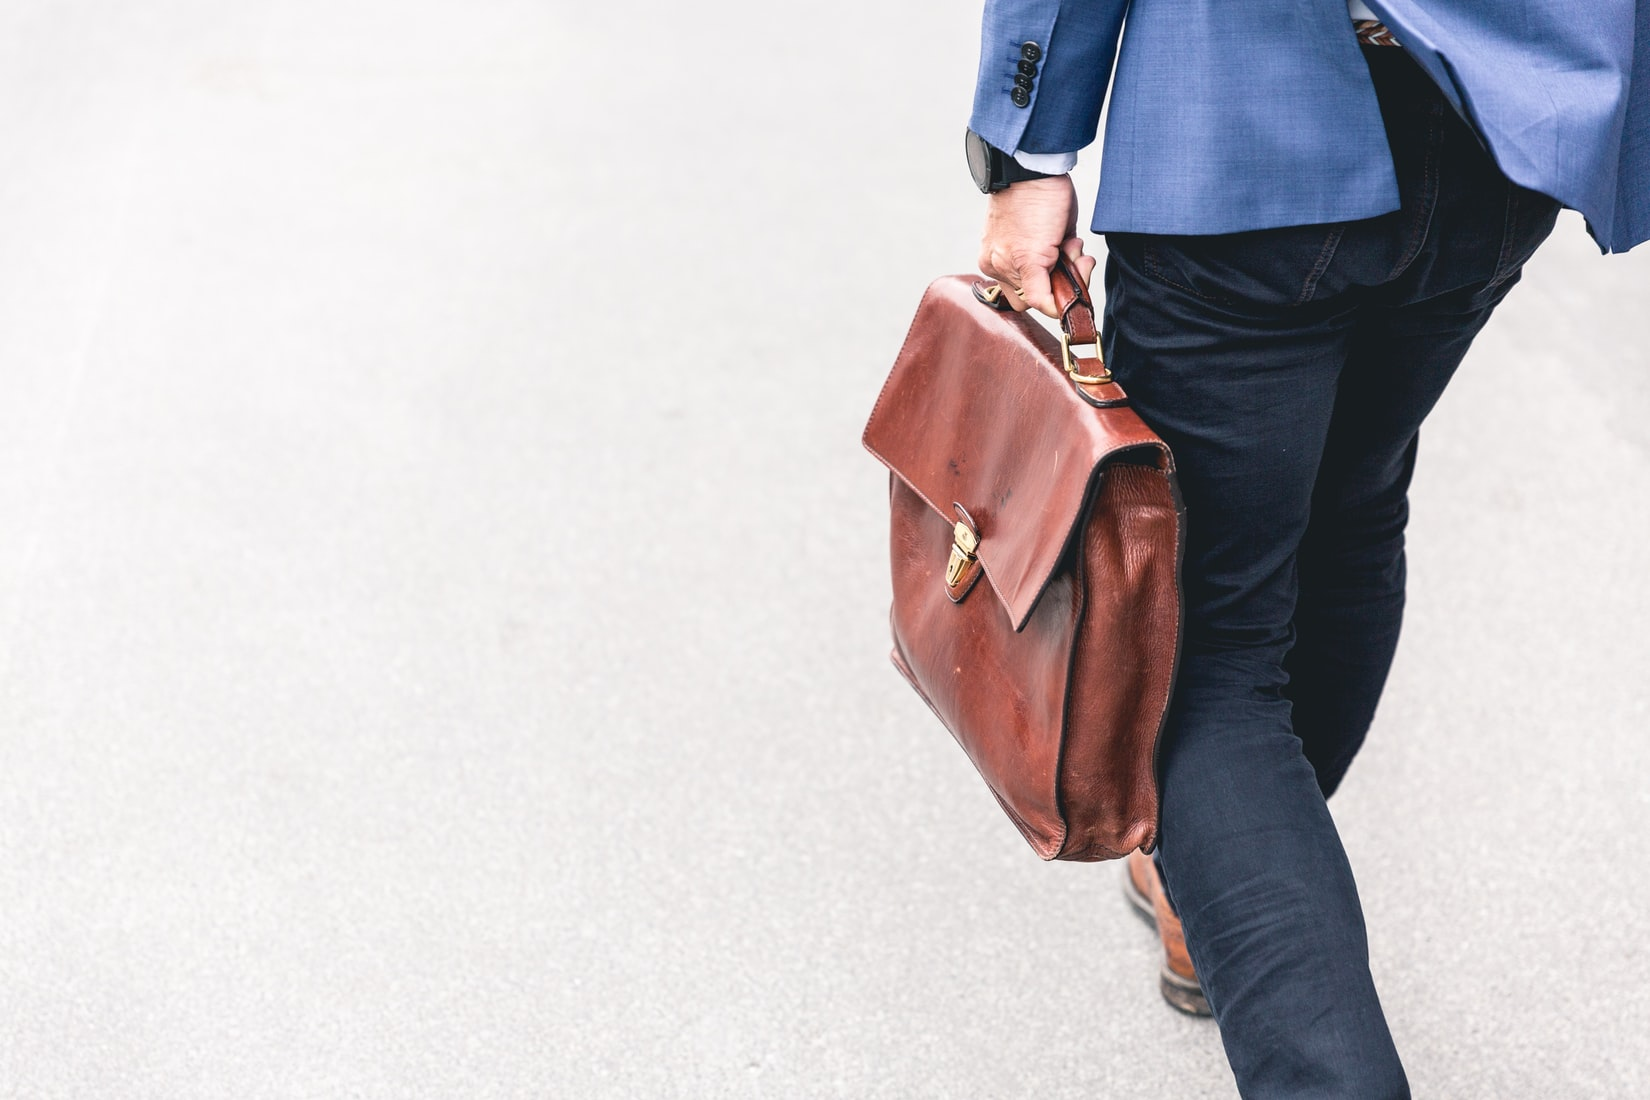 Person walking back to work and holding brown leather bag